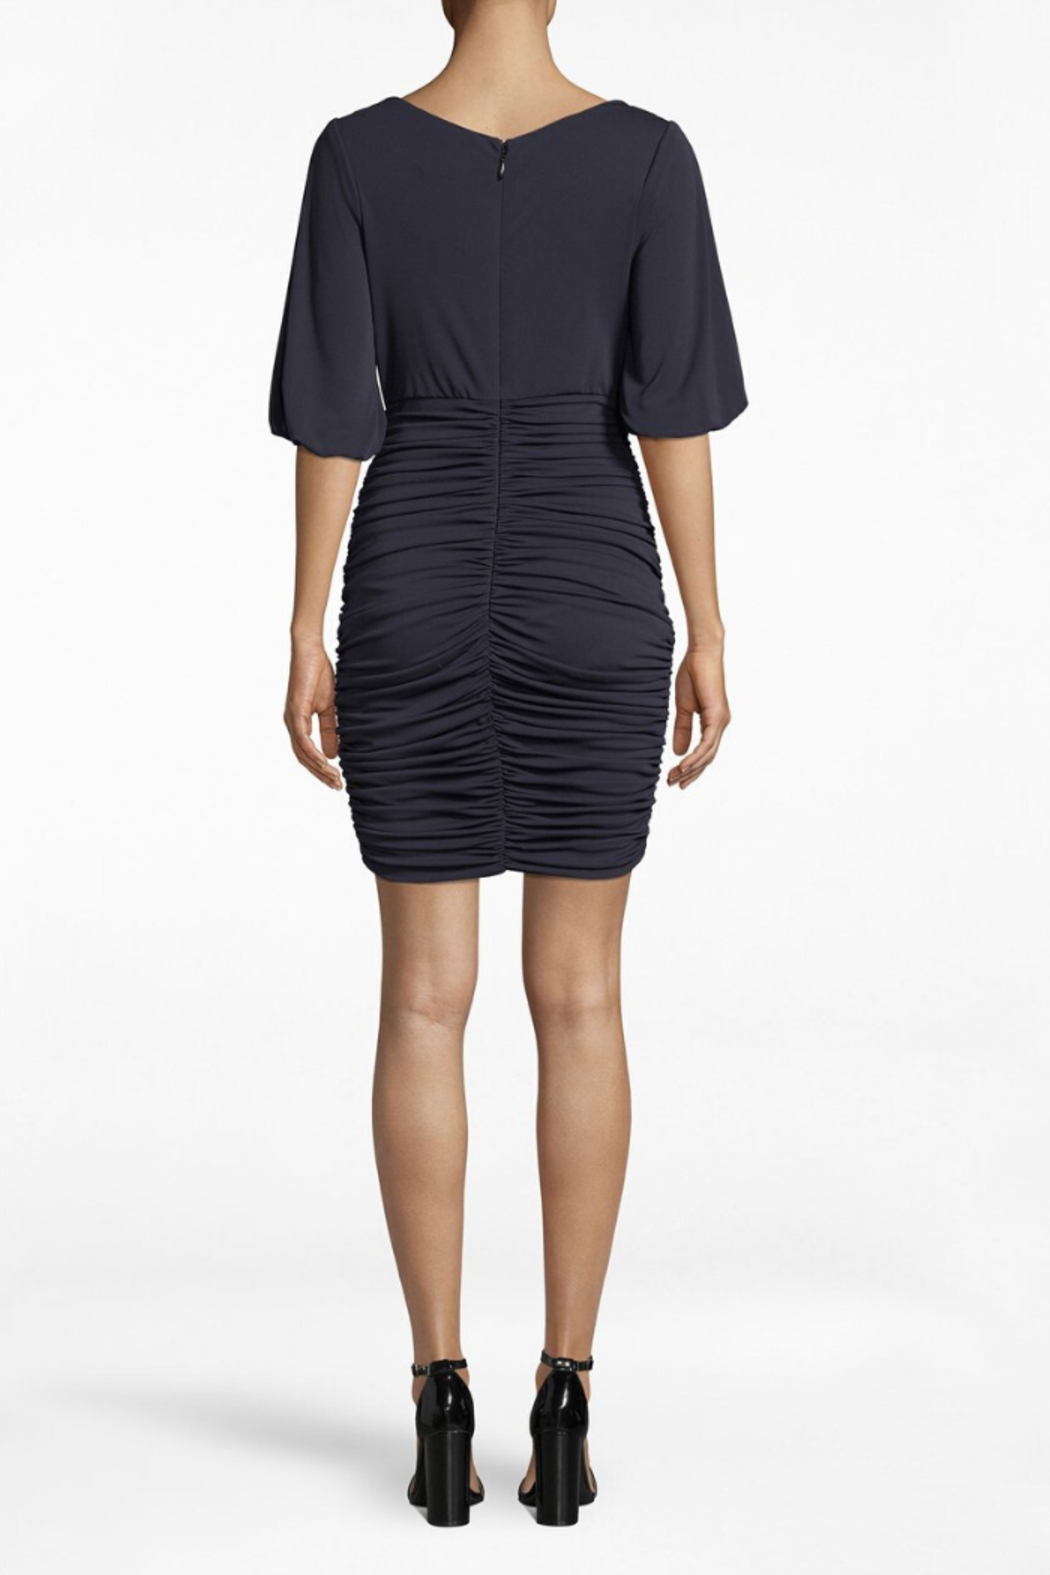 Nicole Miller Ruched Dress - Front Full Image